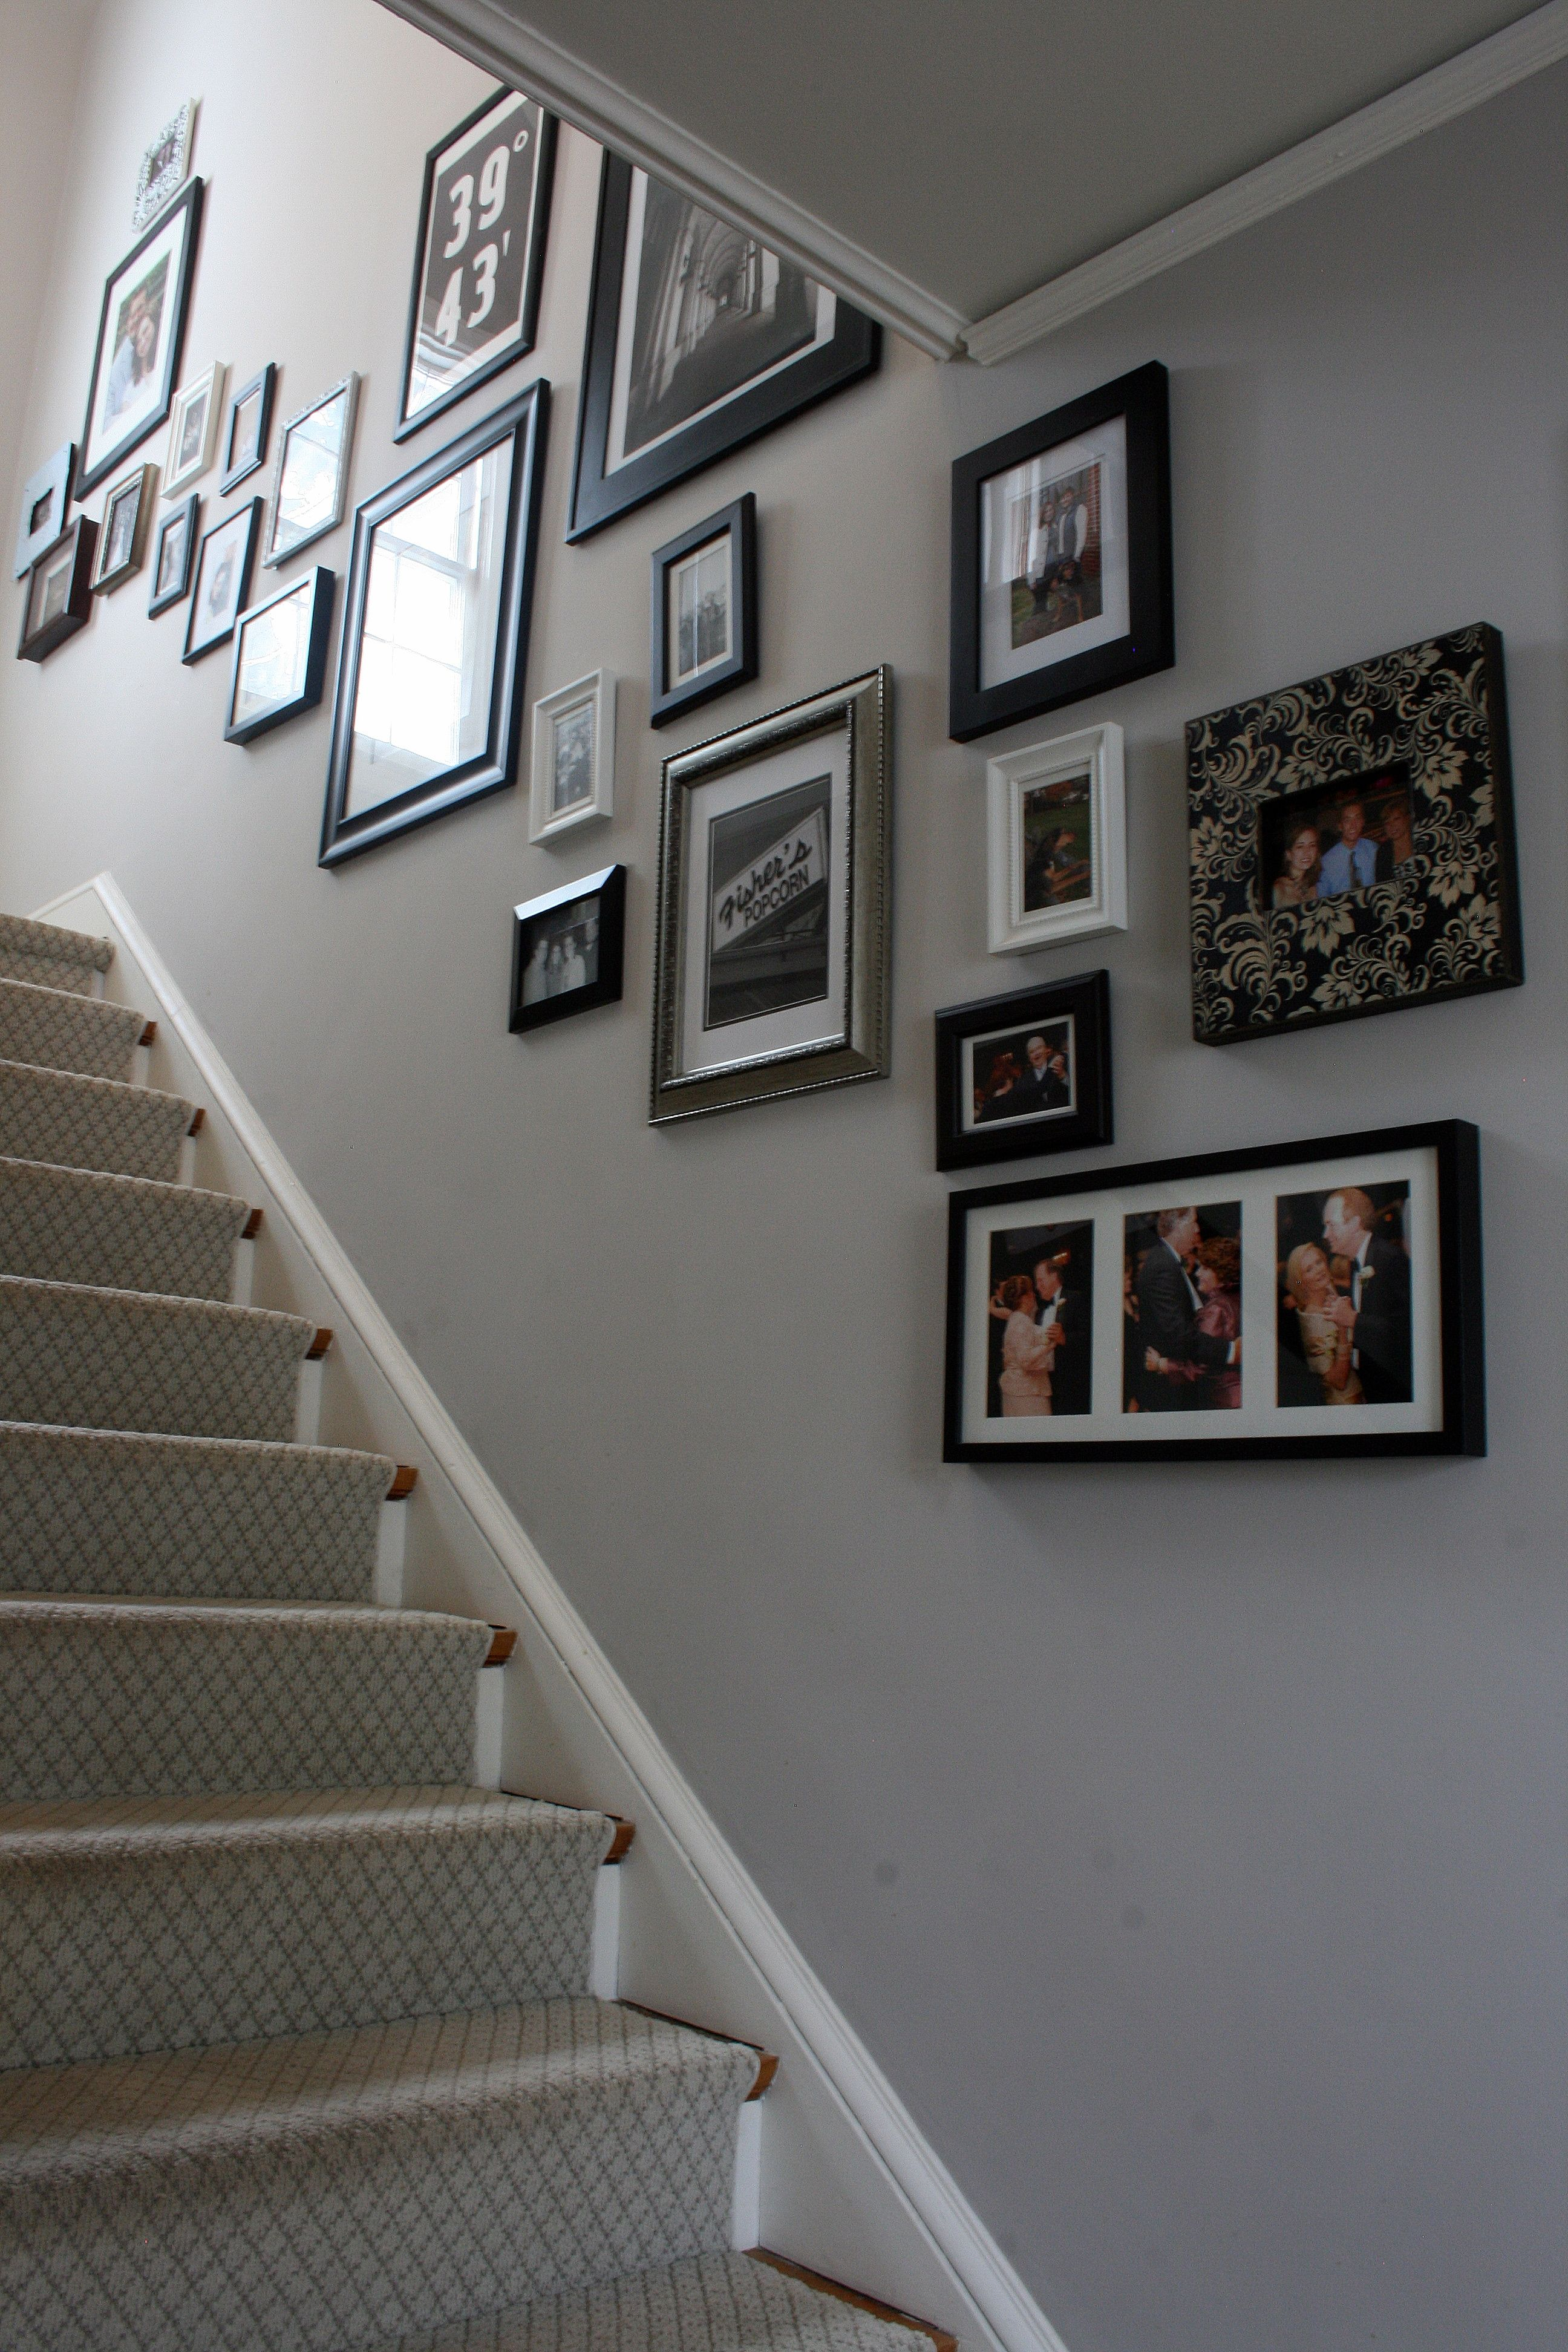 Cornforth White Center Hall With Photo Collage Stairs